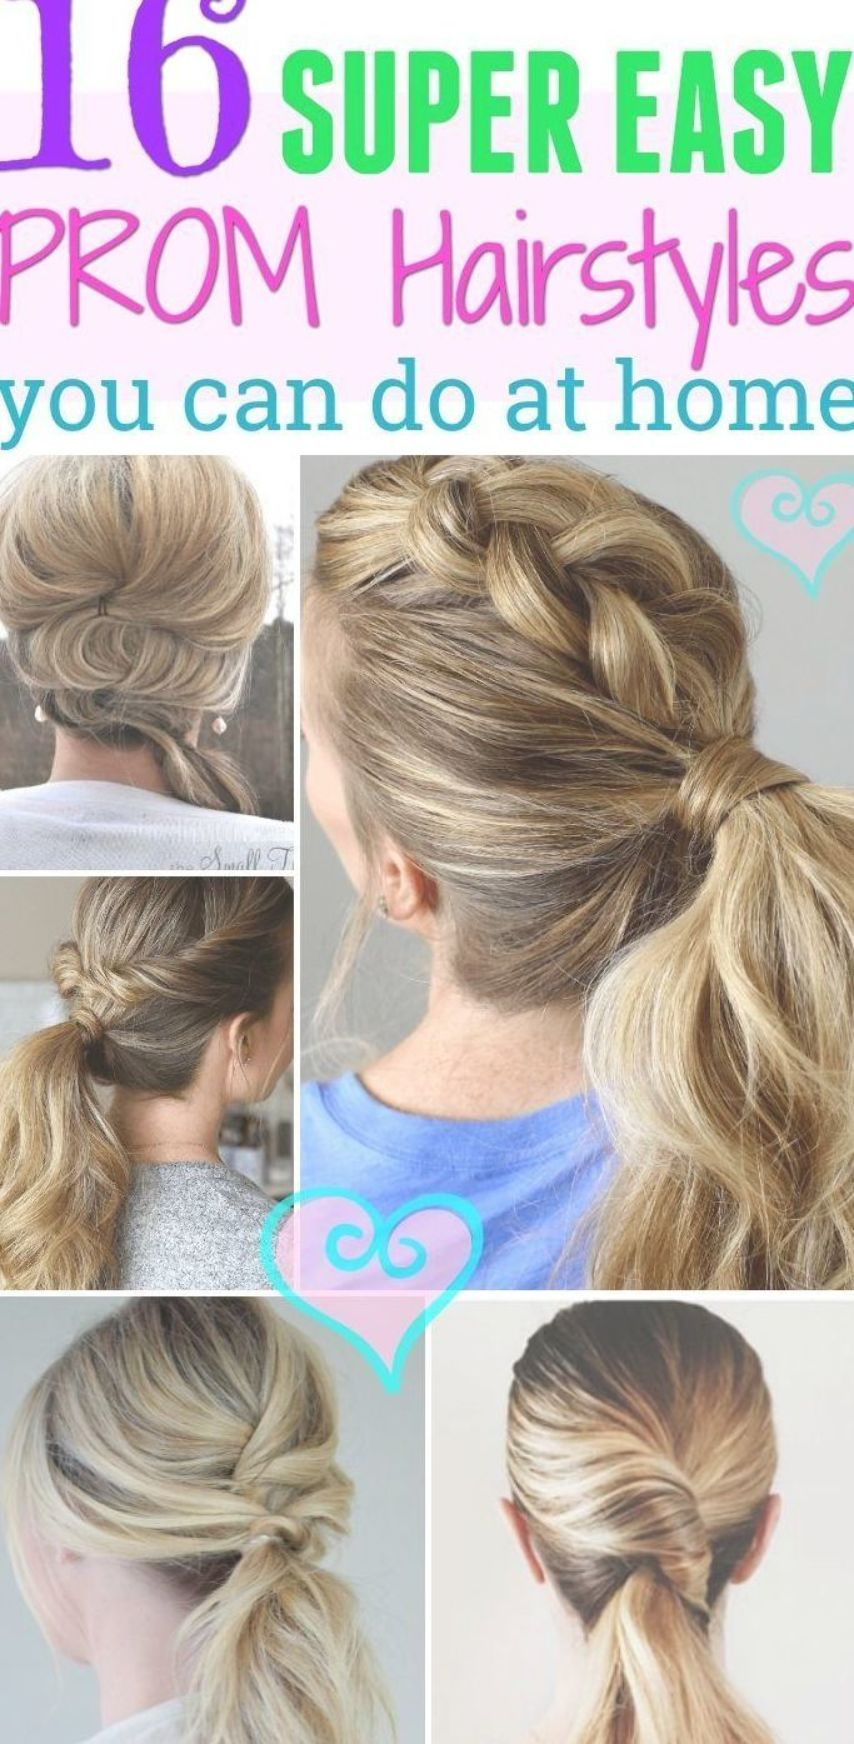 Super Easy To Do Prom Hairstyles You Won T Need A Stylist For Try Out These Unique Prom Hairstyles Anyone Can Do At Hom Hair Styles Simple Prom Hair Prom Hair